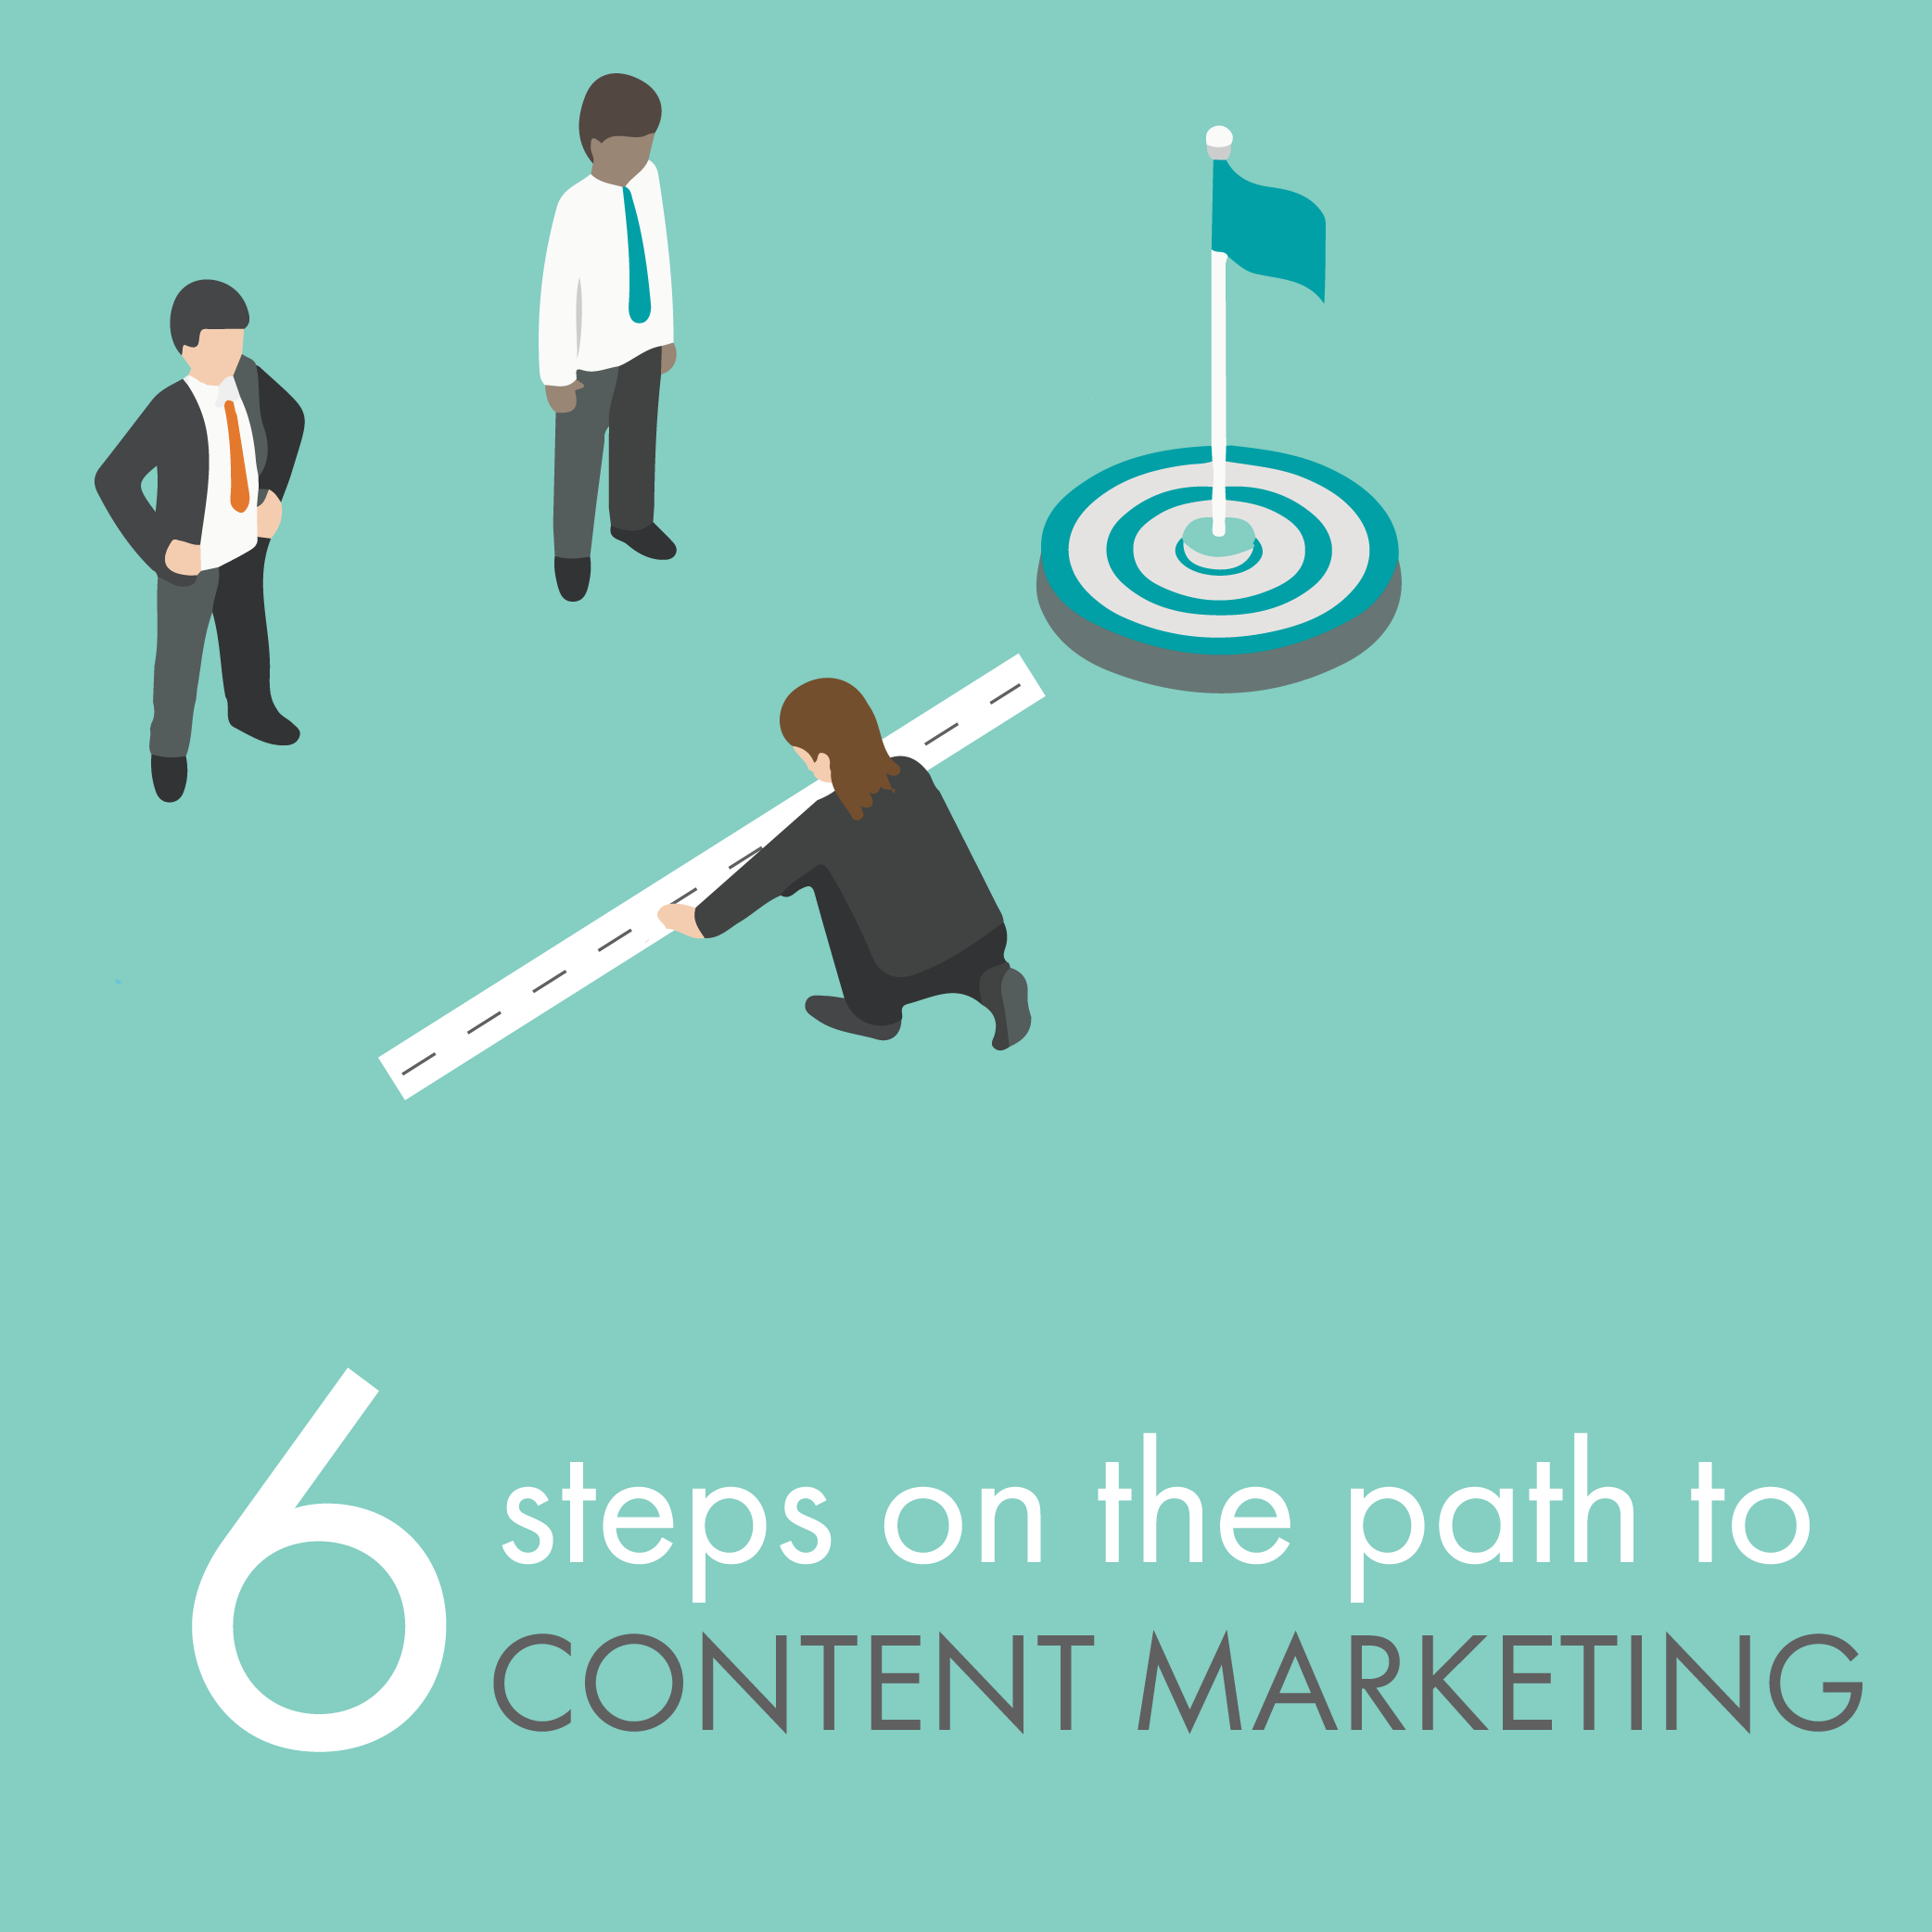 6 Steps on the Path to Content Marketing